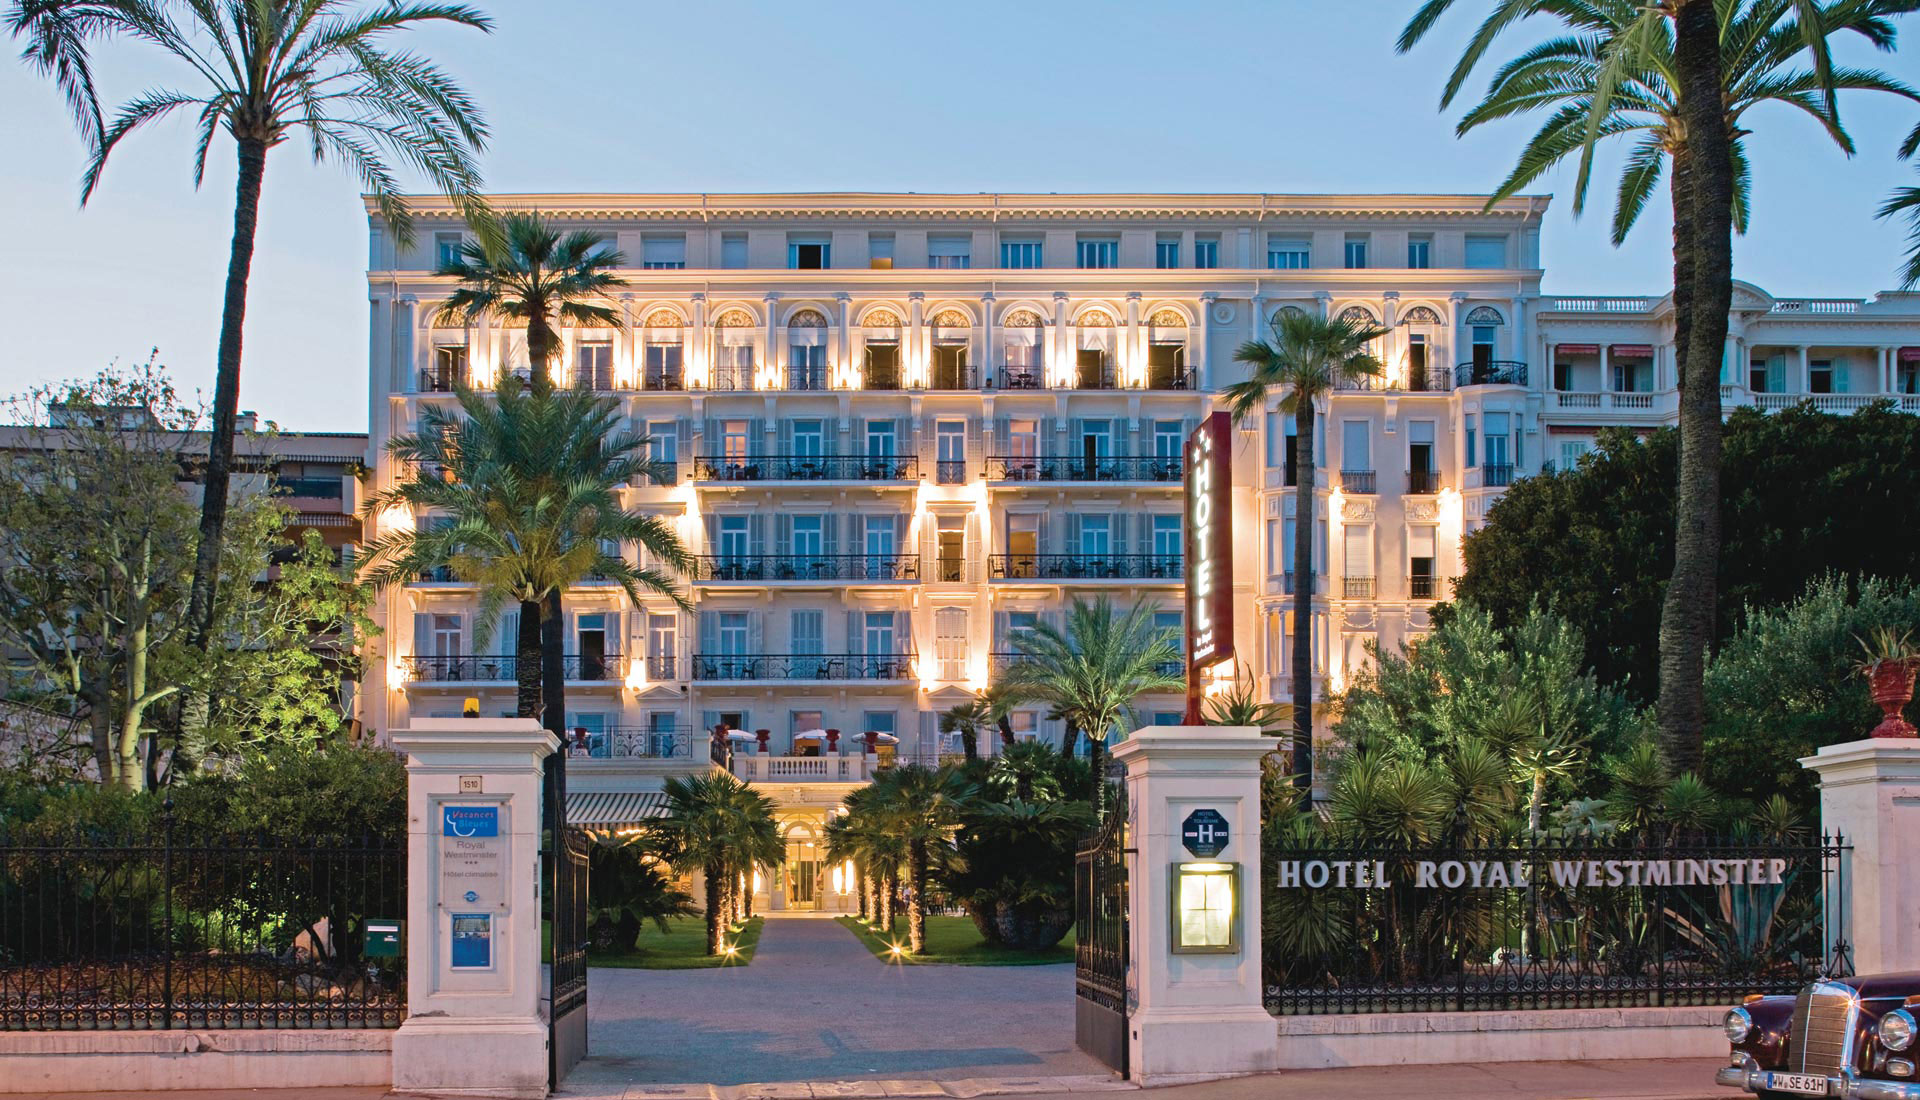 Le Royal Westminster welcomes you for your holidays in the French Riviera